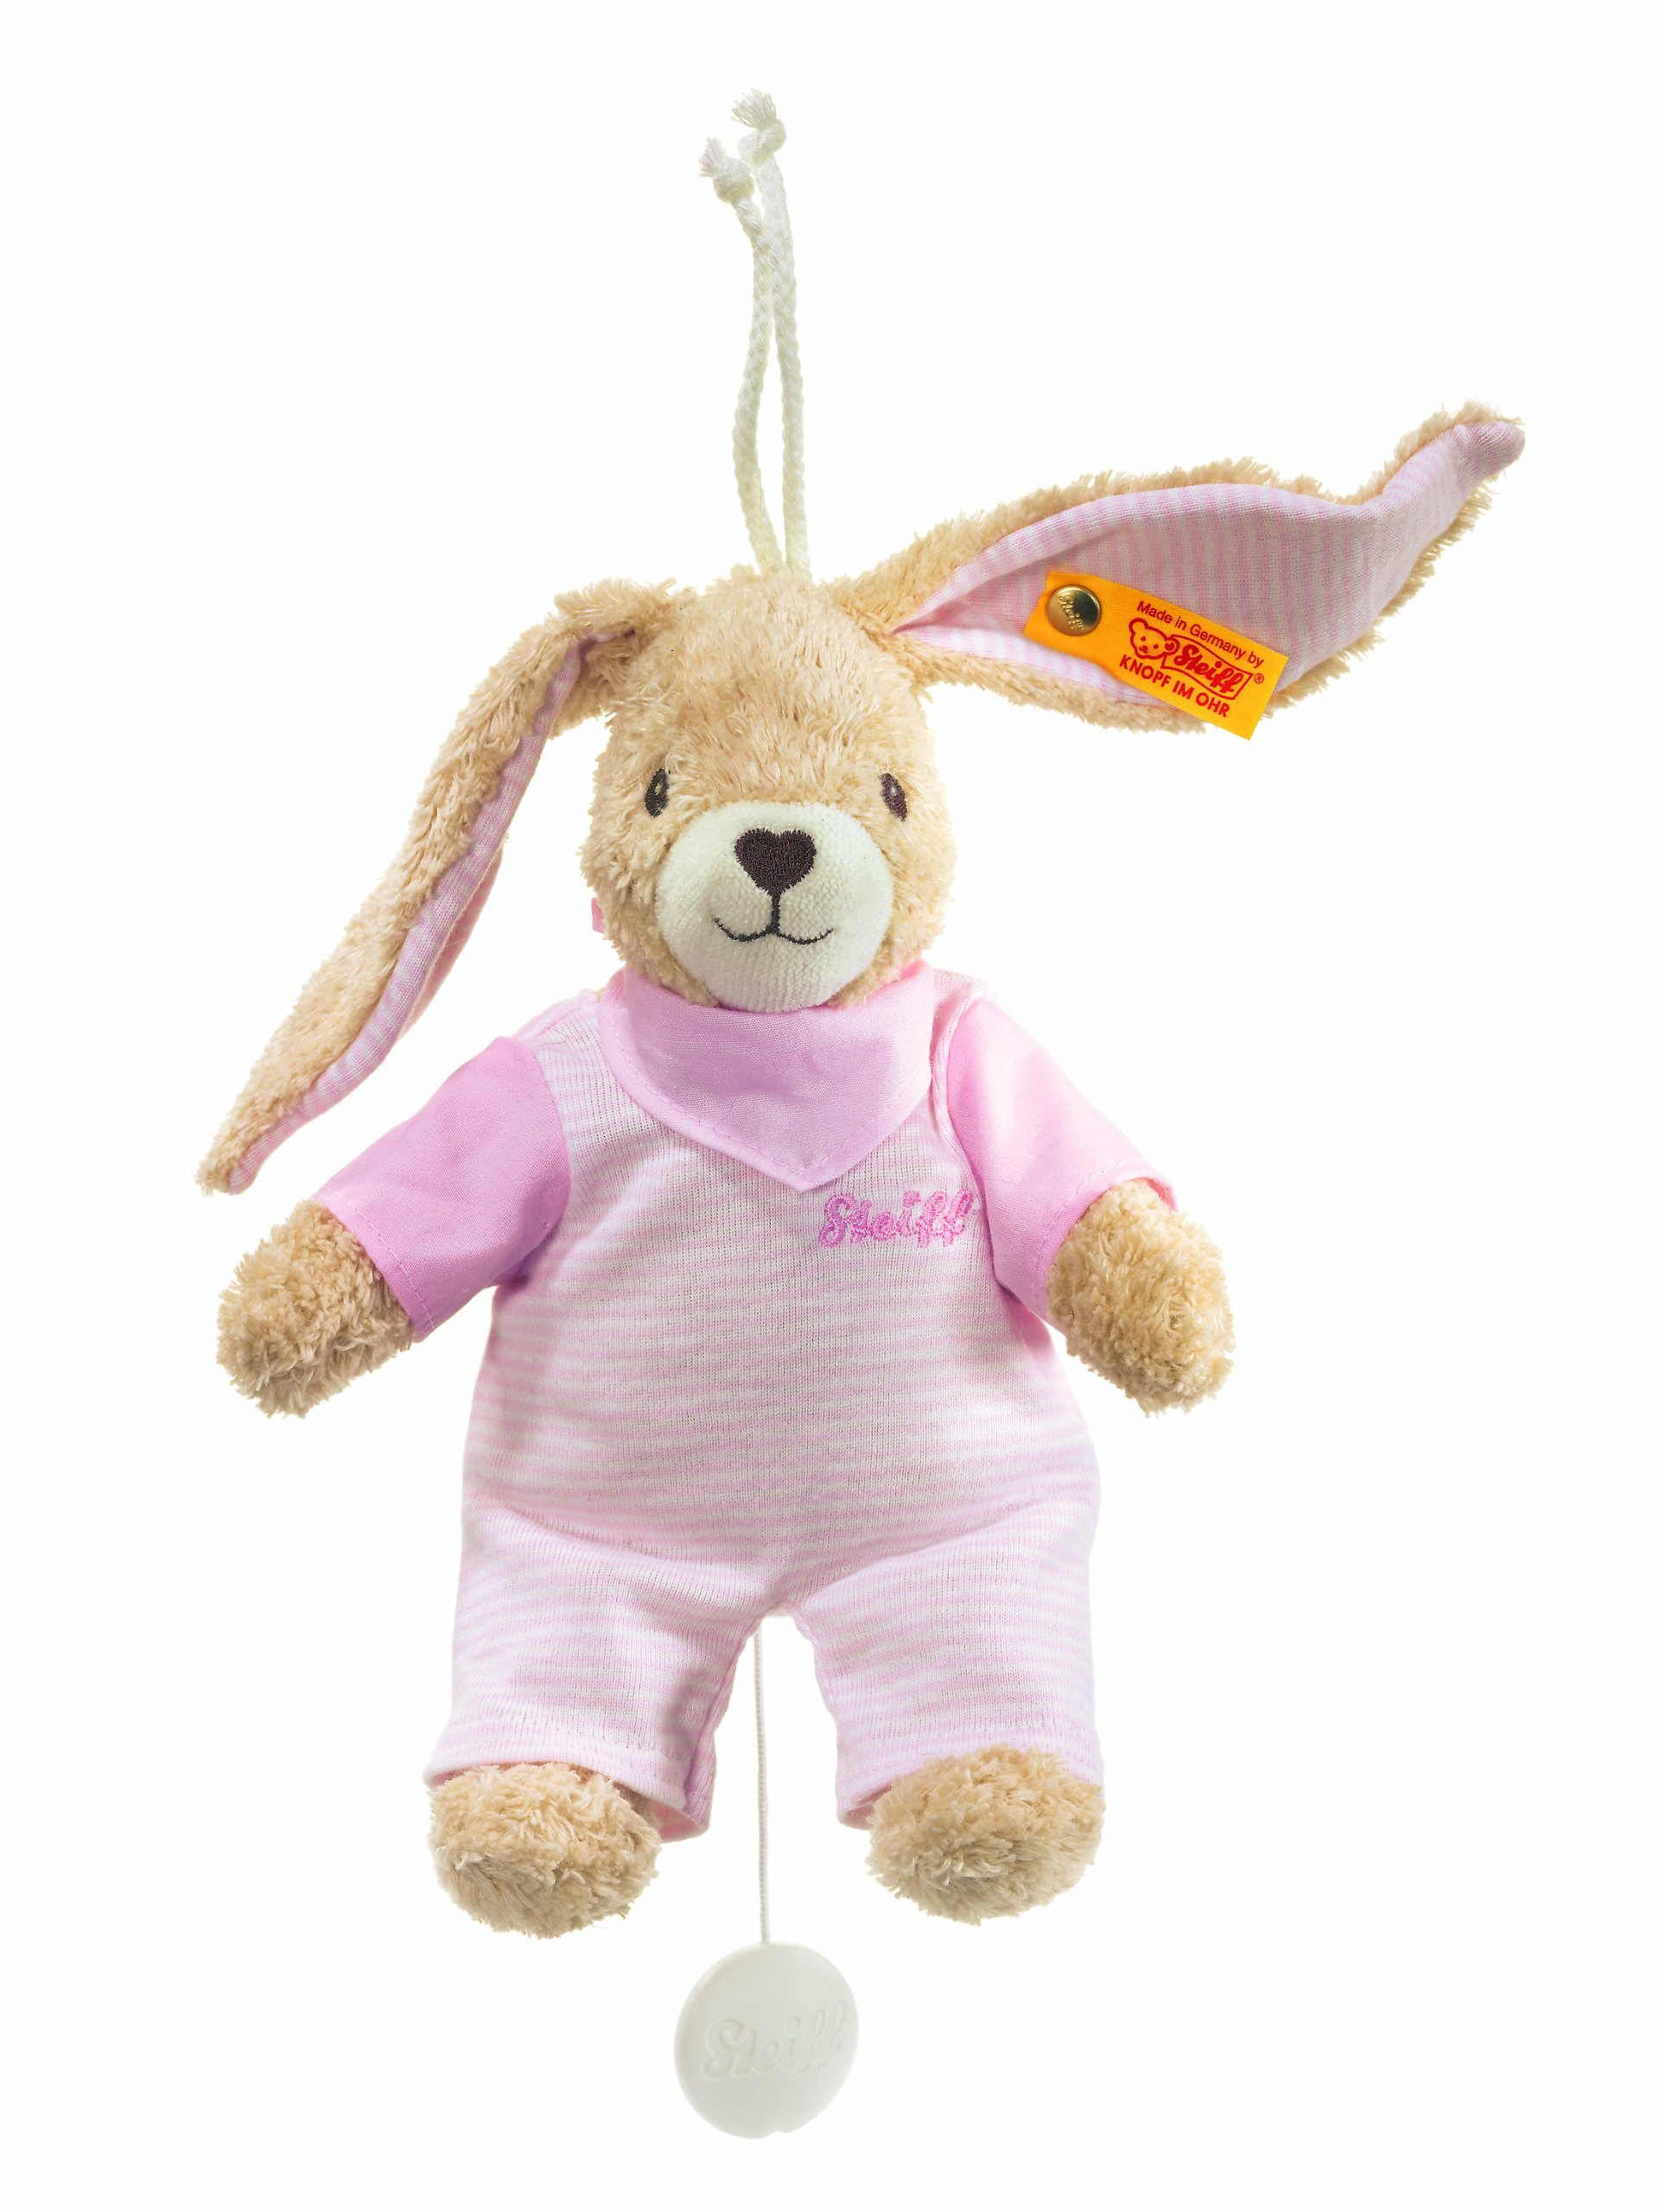 Steiff Hoppel Rabbit with Removable Music Box Plays a Folk Song (Pale Pink,20cm)